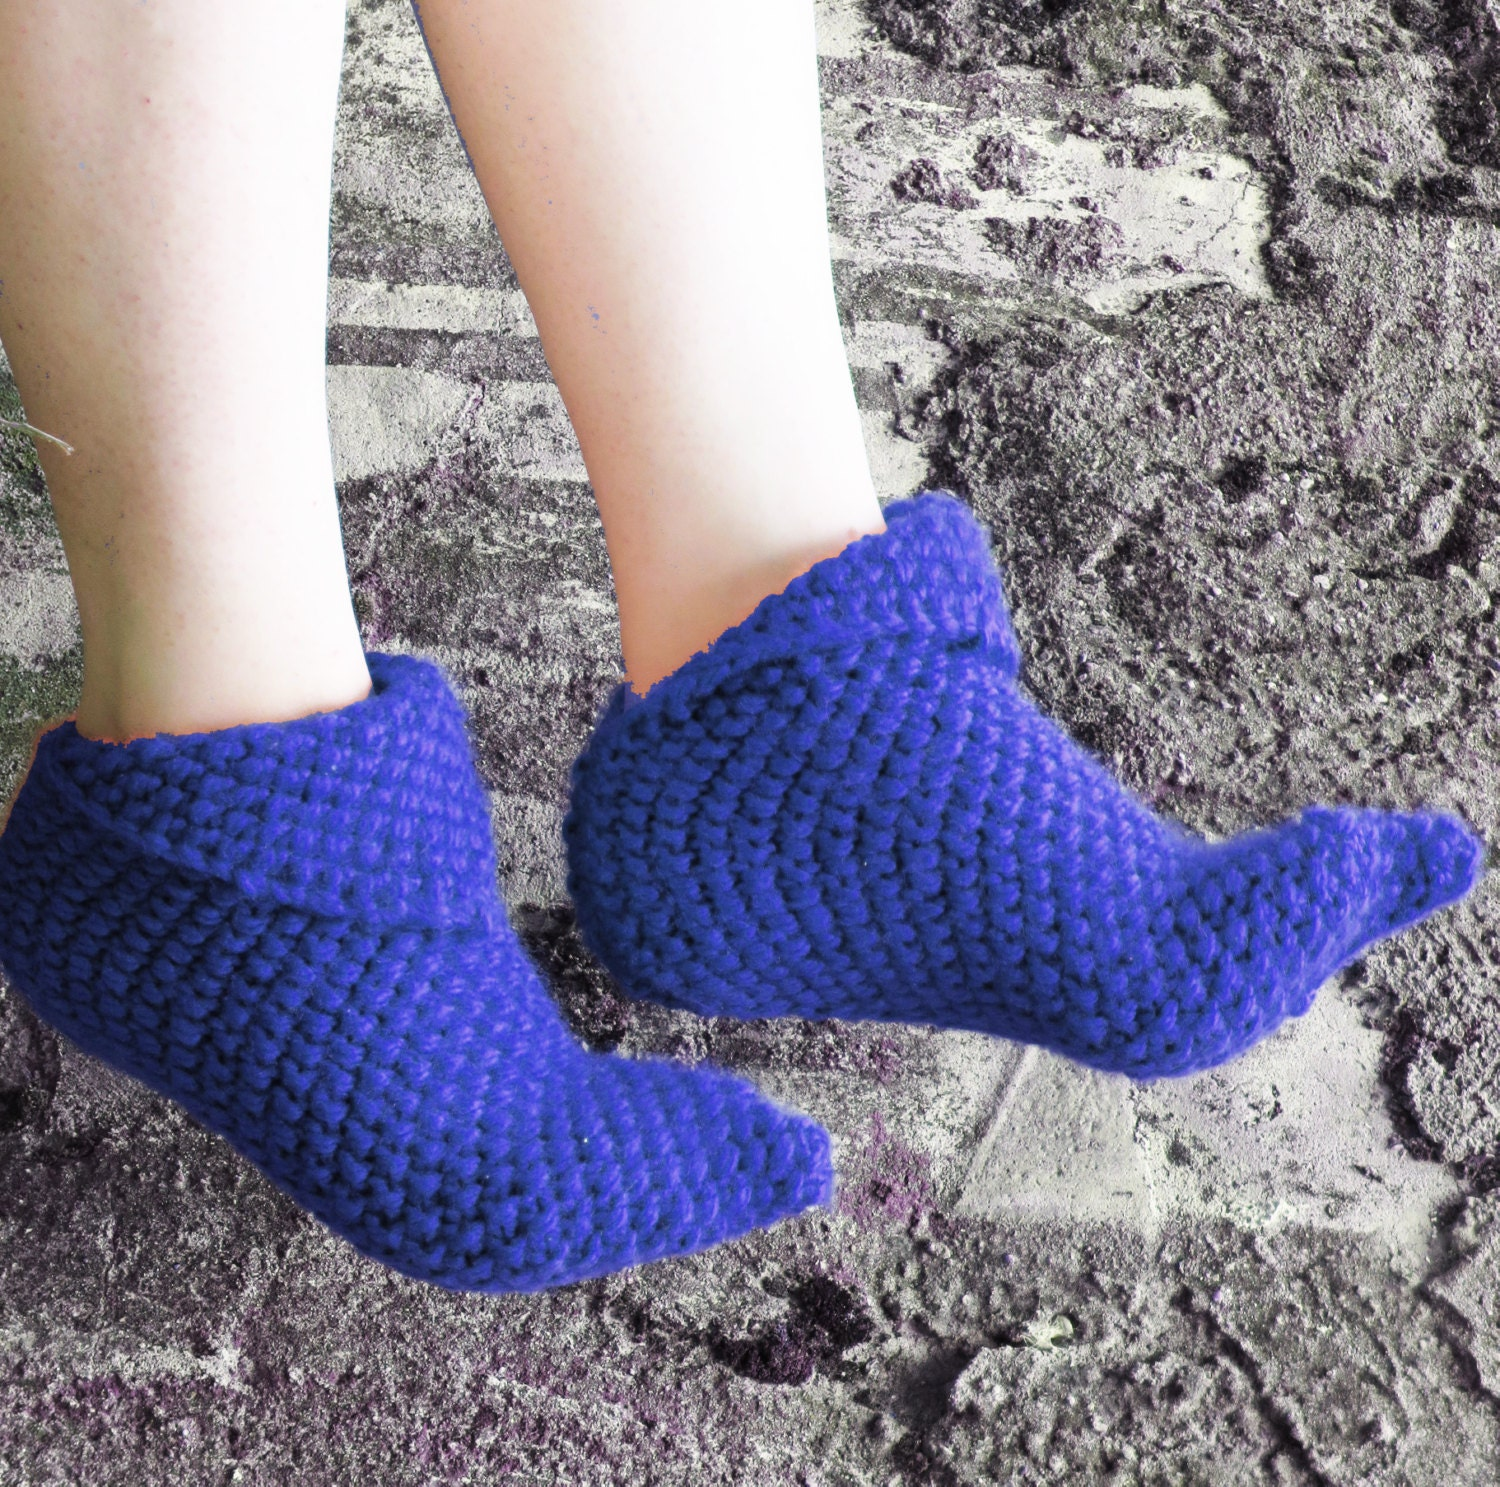 Knitting Pattern For Womens Slippers : Knitted Slippers Women Slippers Knit Slippers Blue house